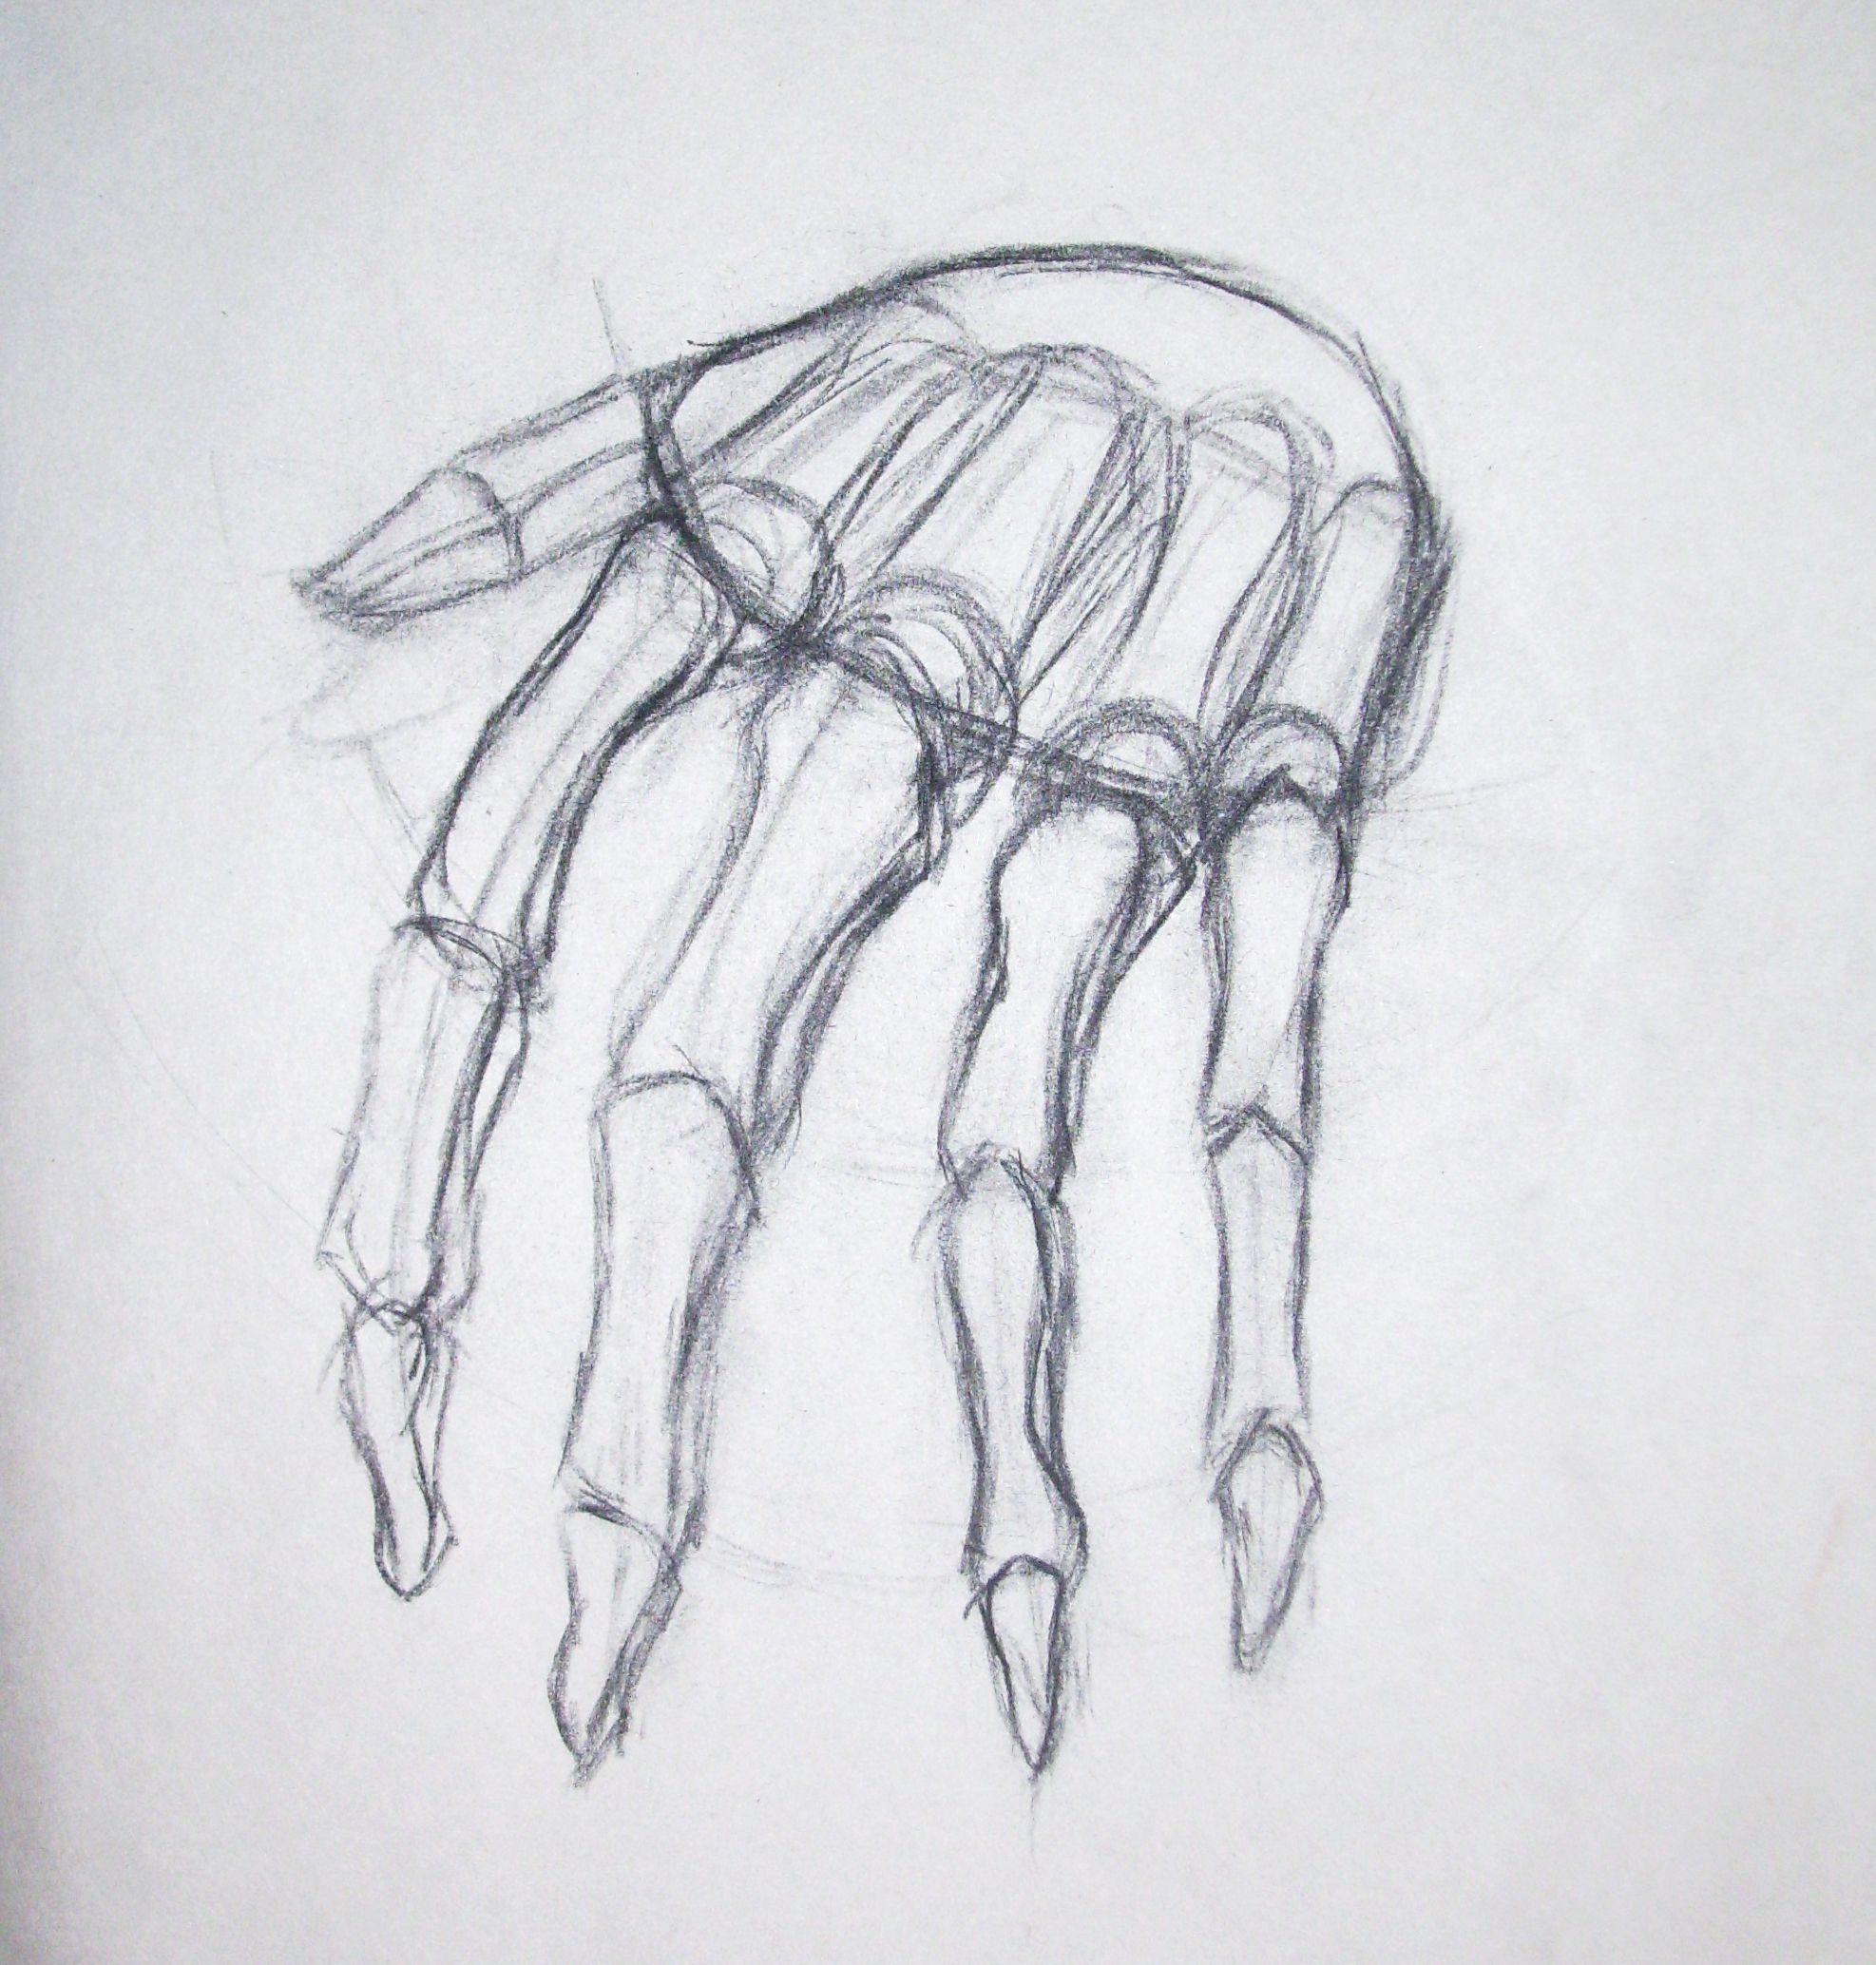 Week 11 Skeleton hands drawing, Skeleton drawings, How